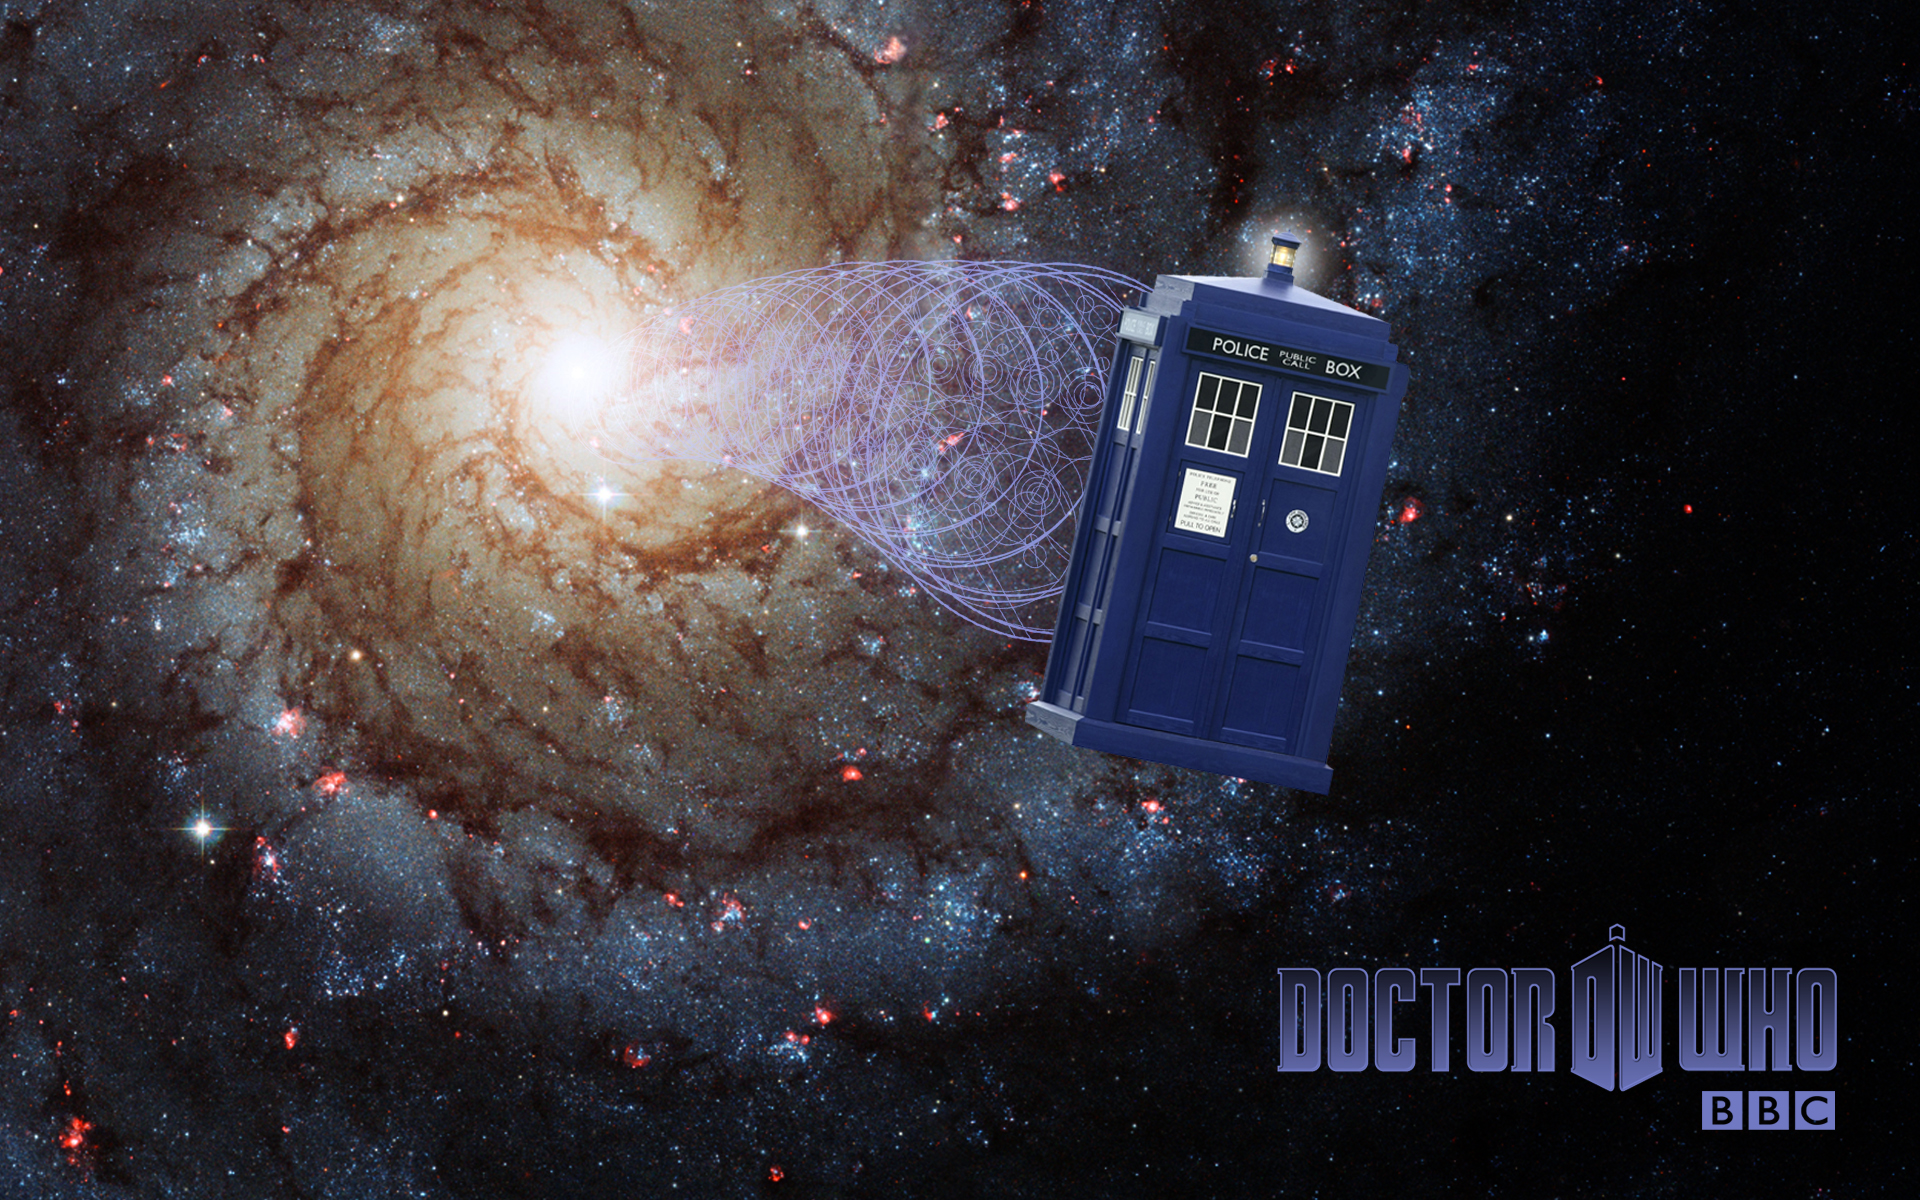 dr who theme download